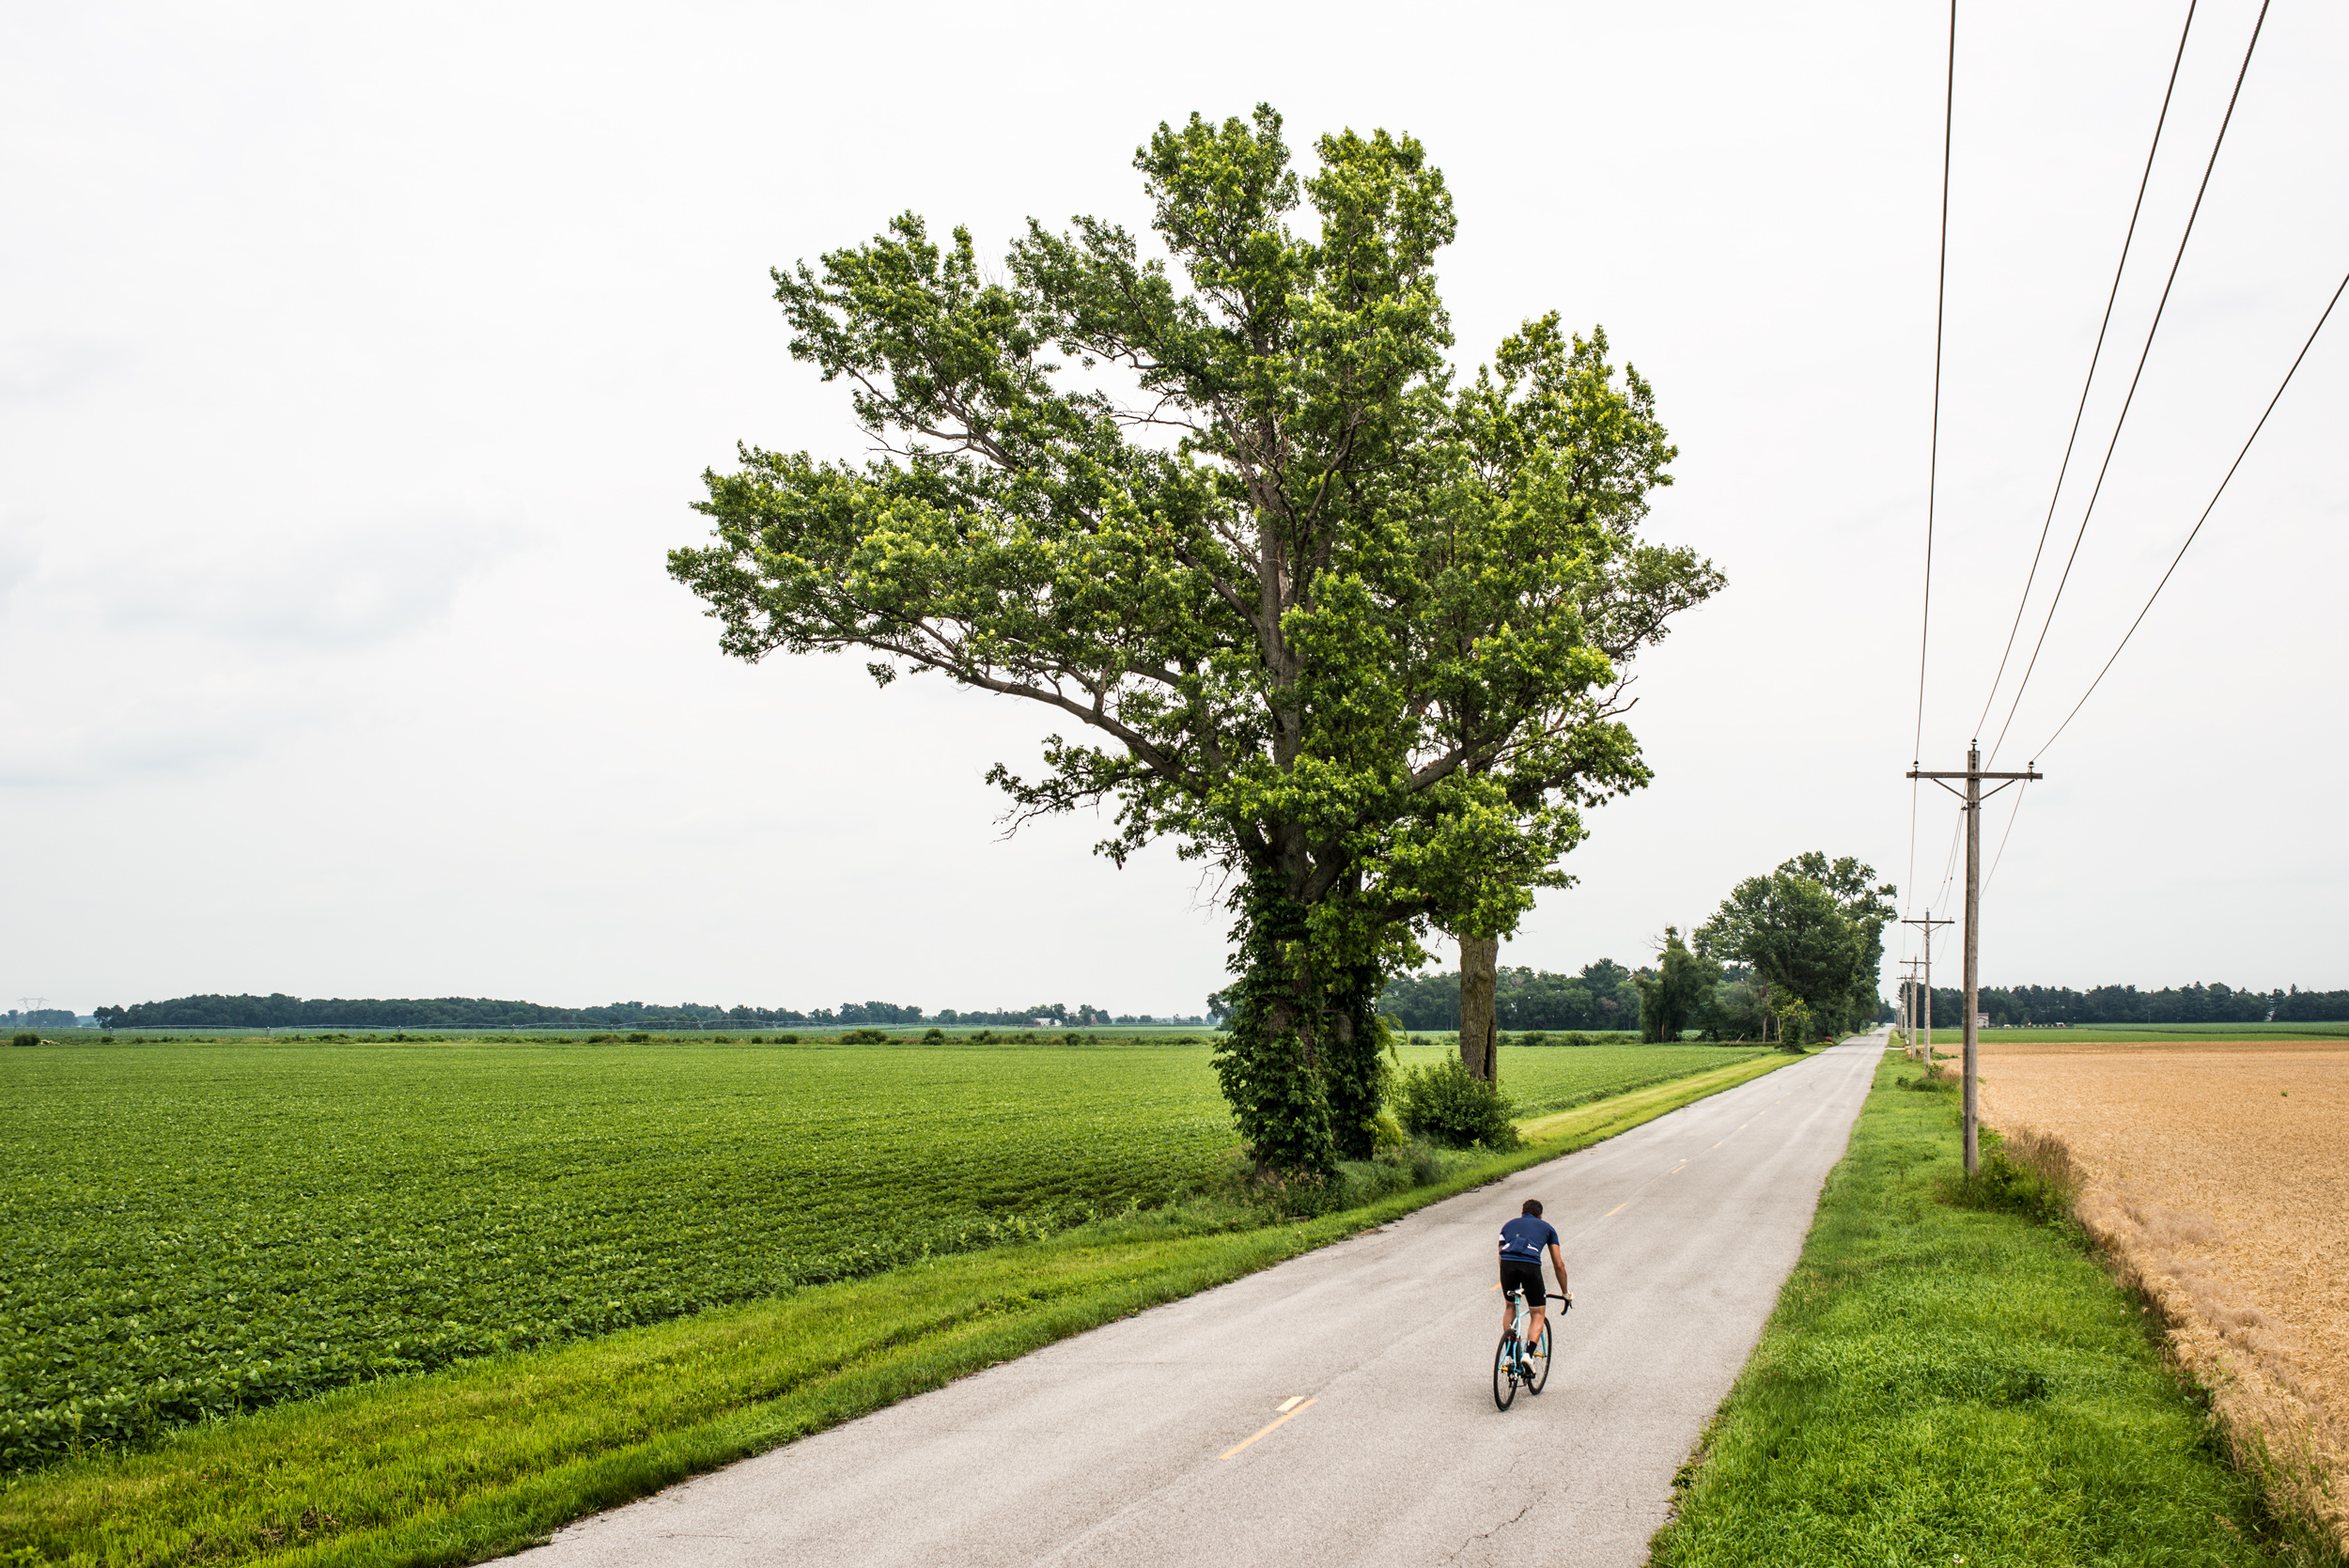 Somewhere in Ohio, testing out the drivetrain after a mid-day tweak.